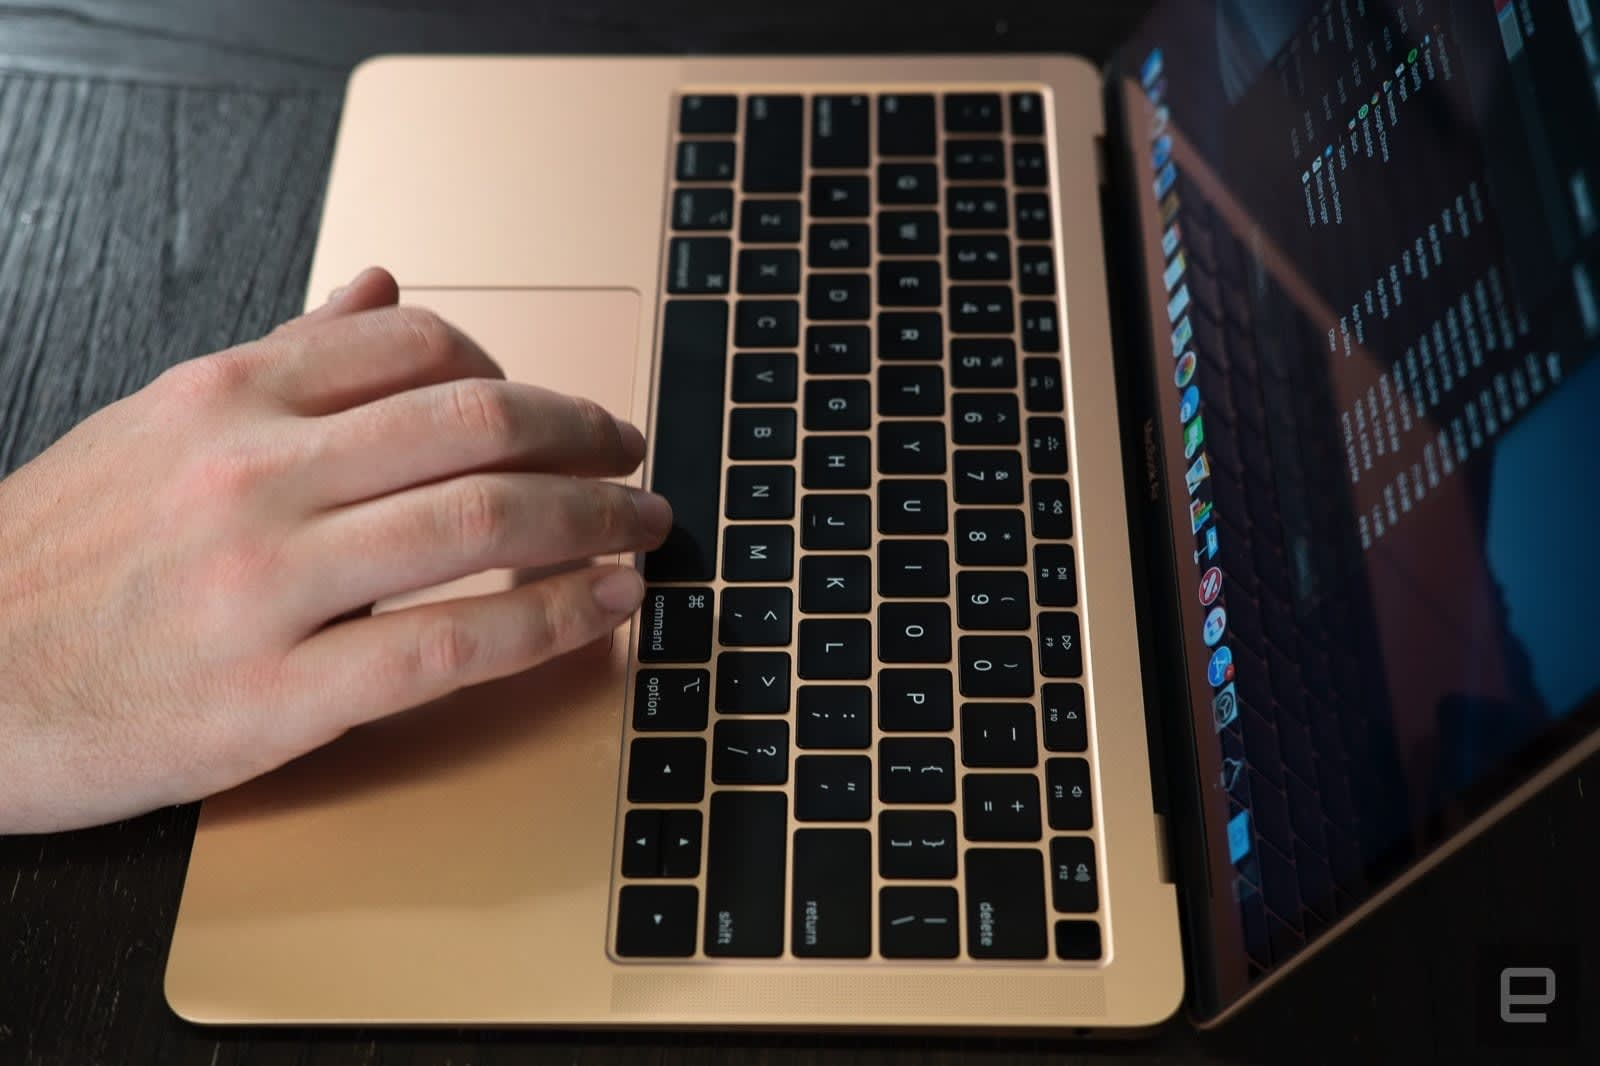 Apple acknowledges keyboard problems with recent MacBooks